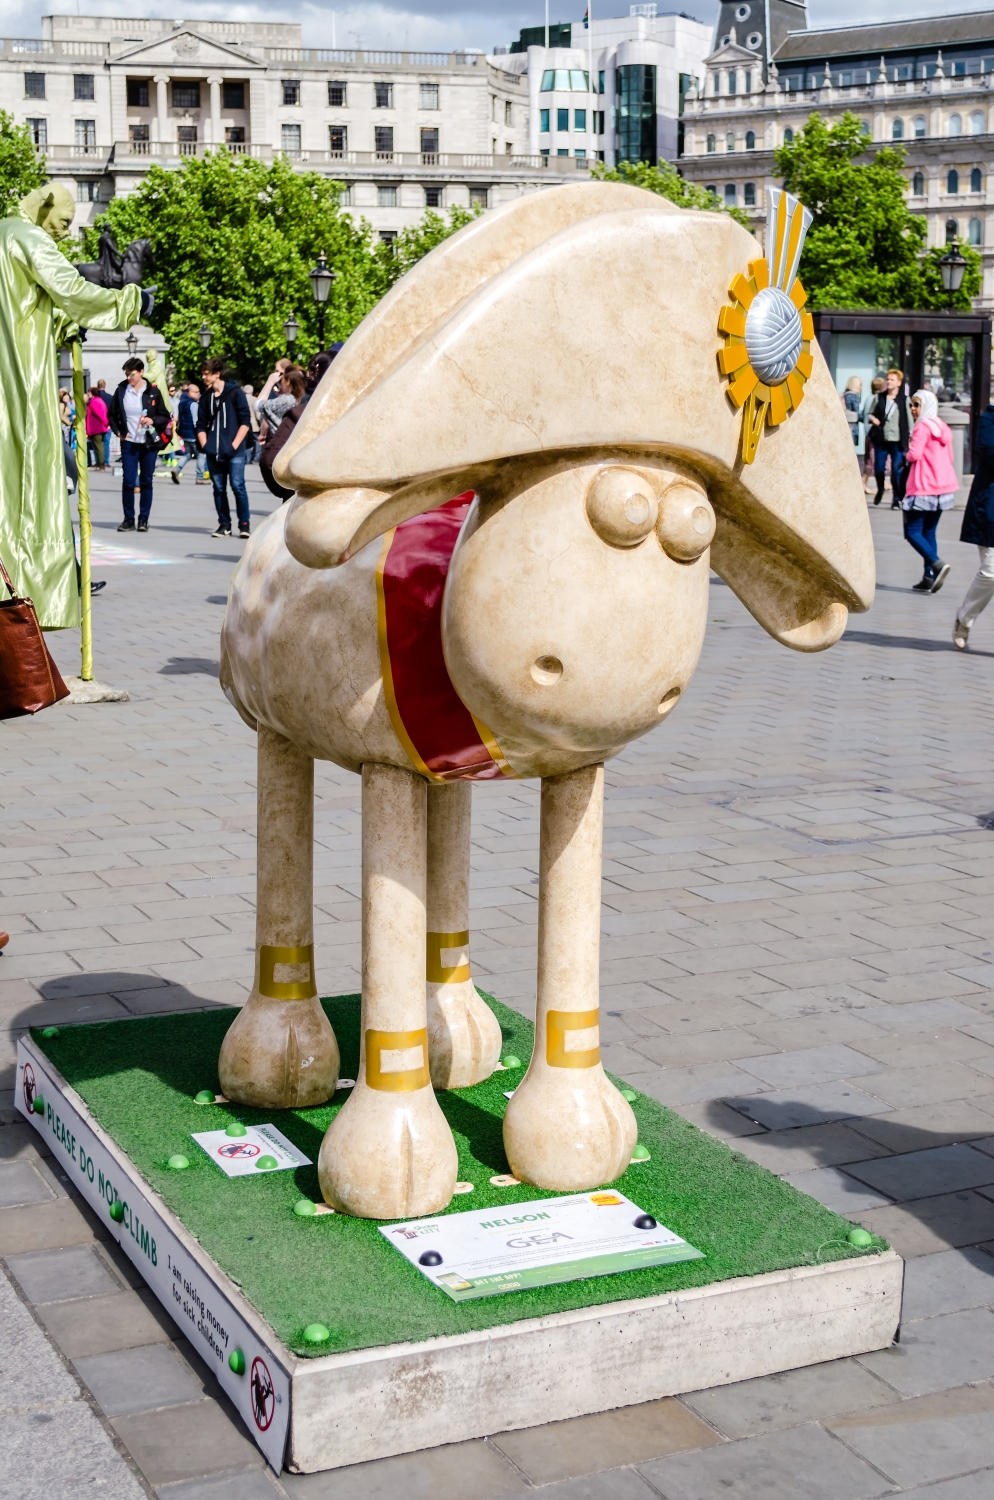 Aardman's Shaun the Sheep character